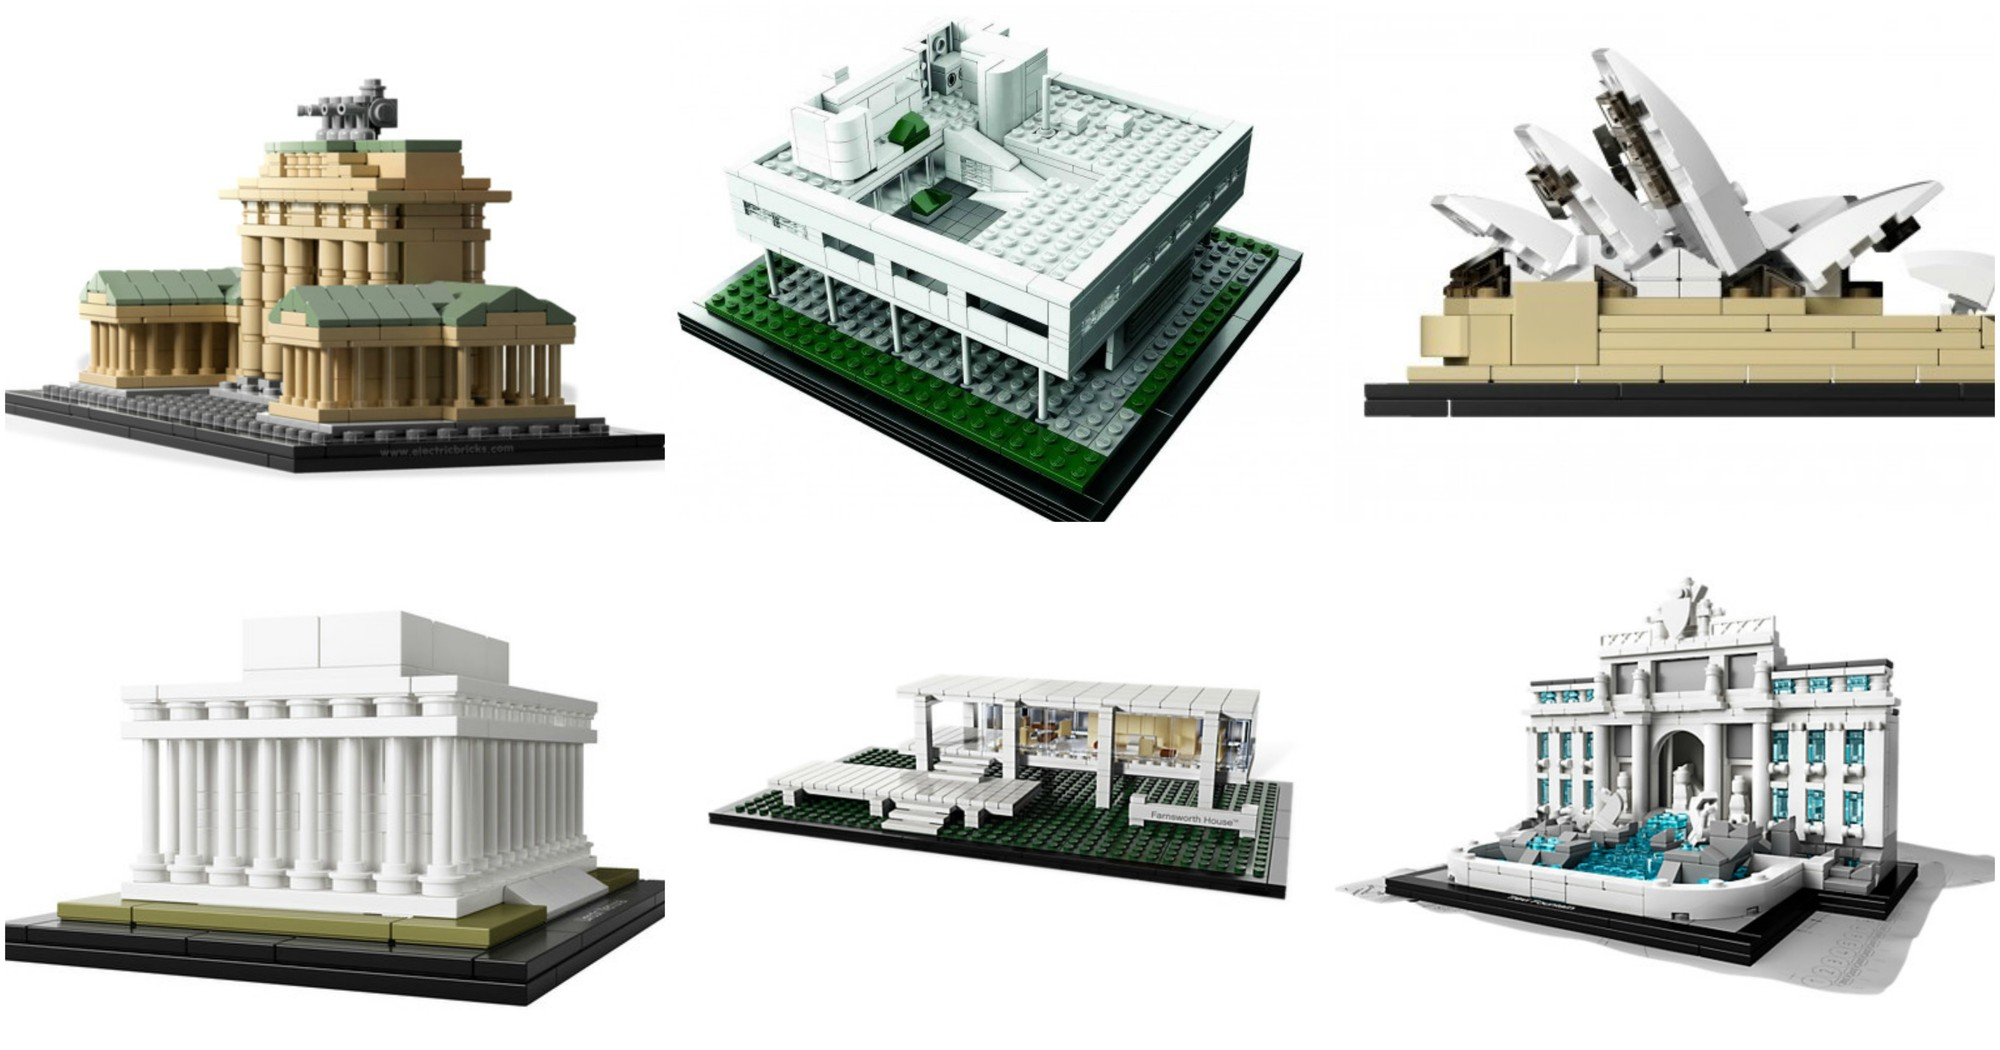 15 LEGO Ideas To Build And Inspire, © LEGO